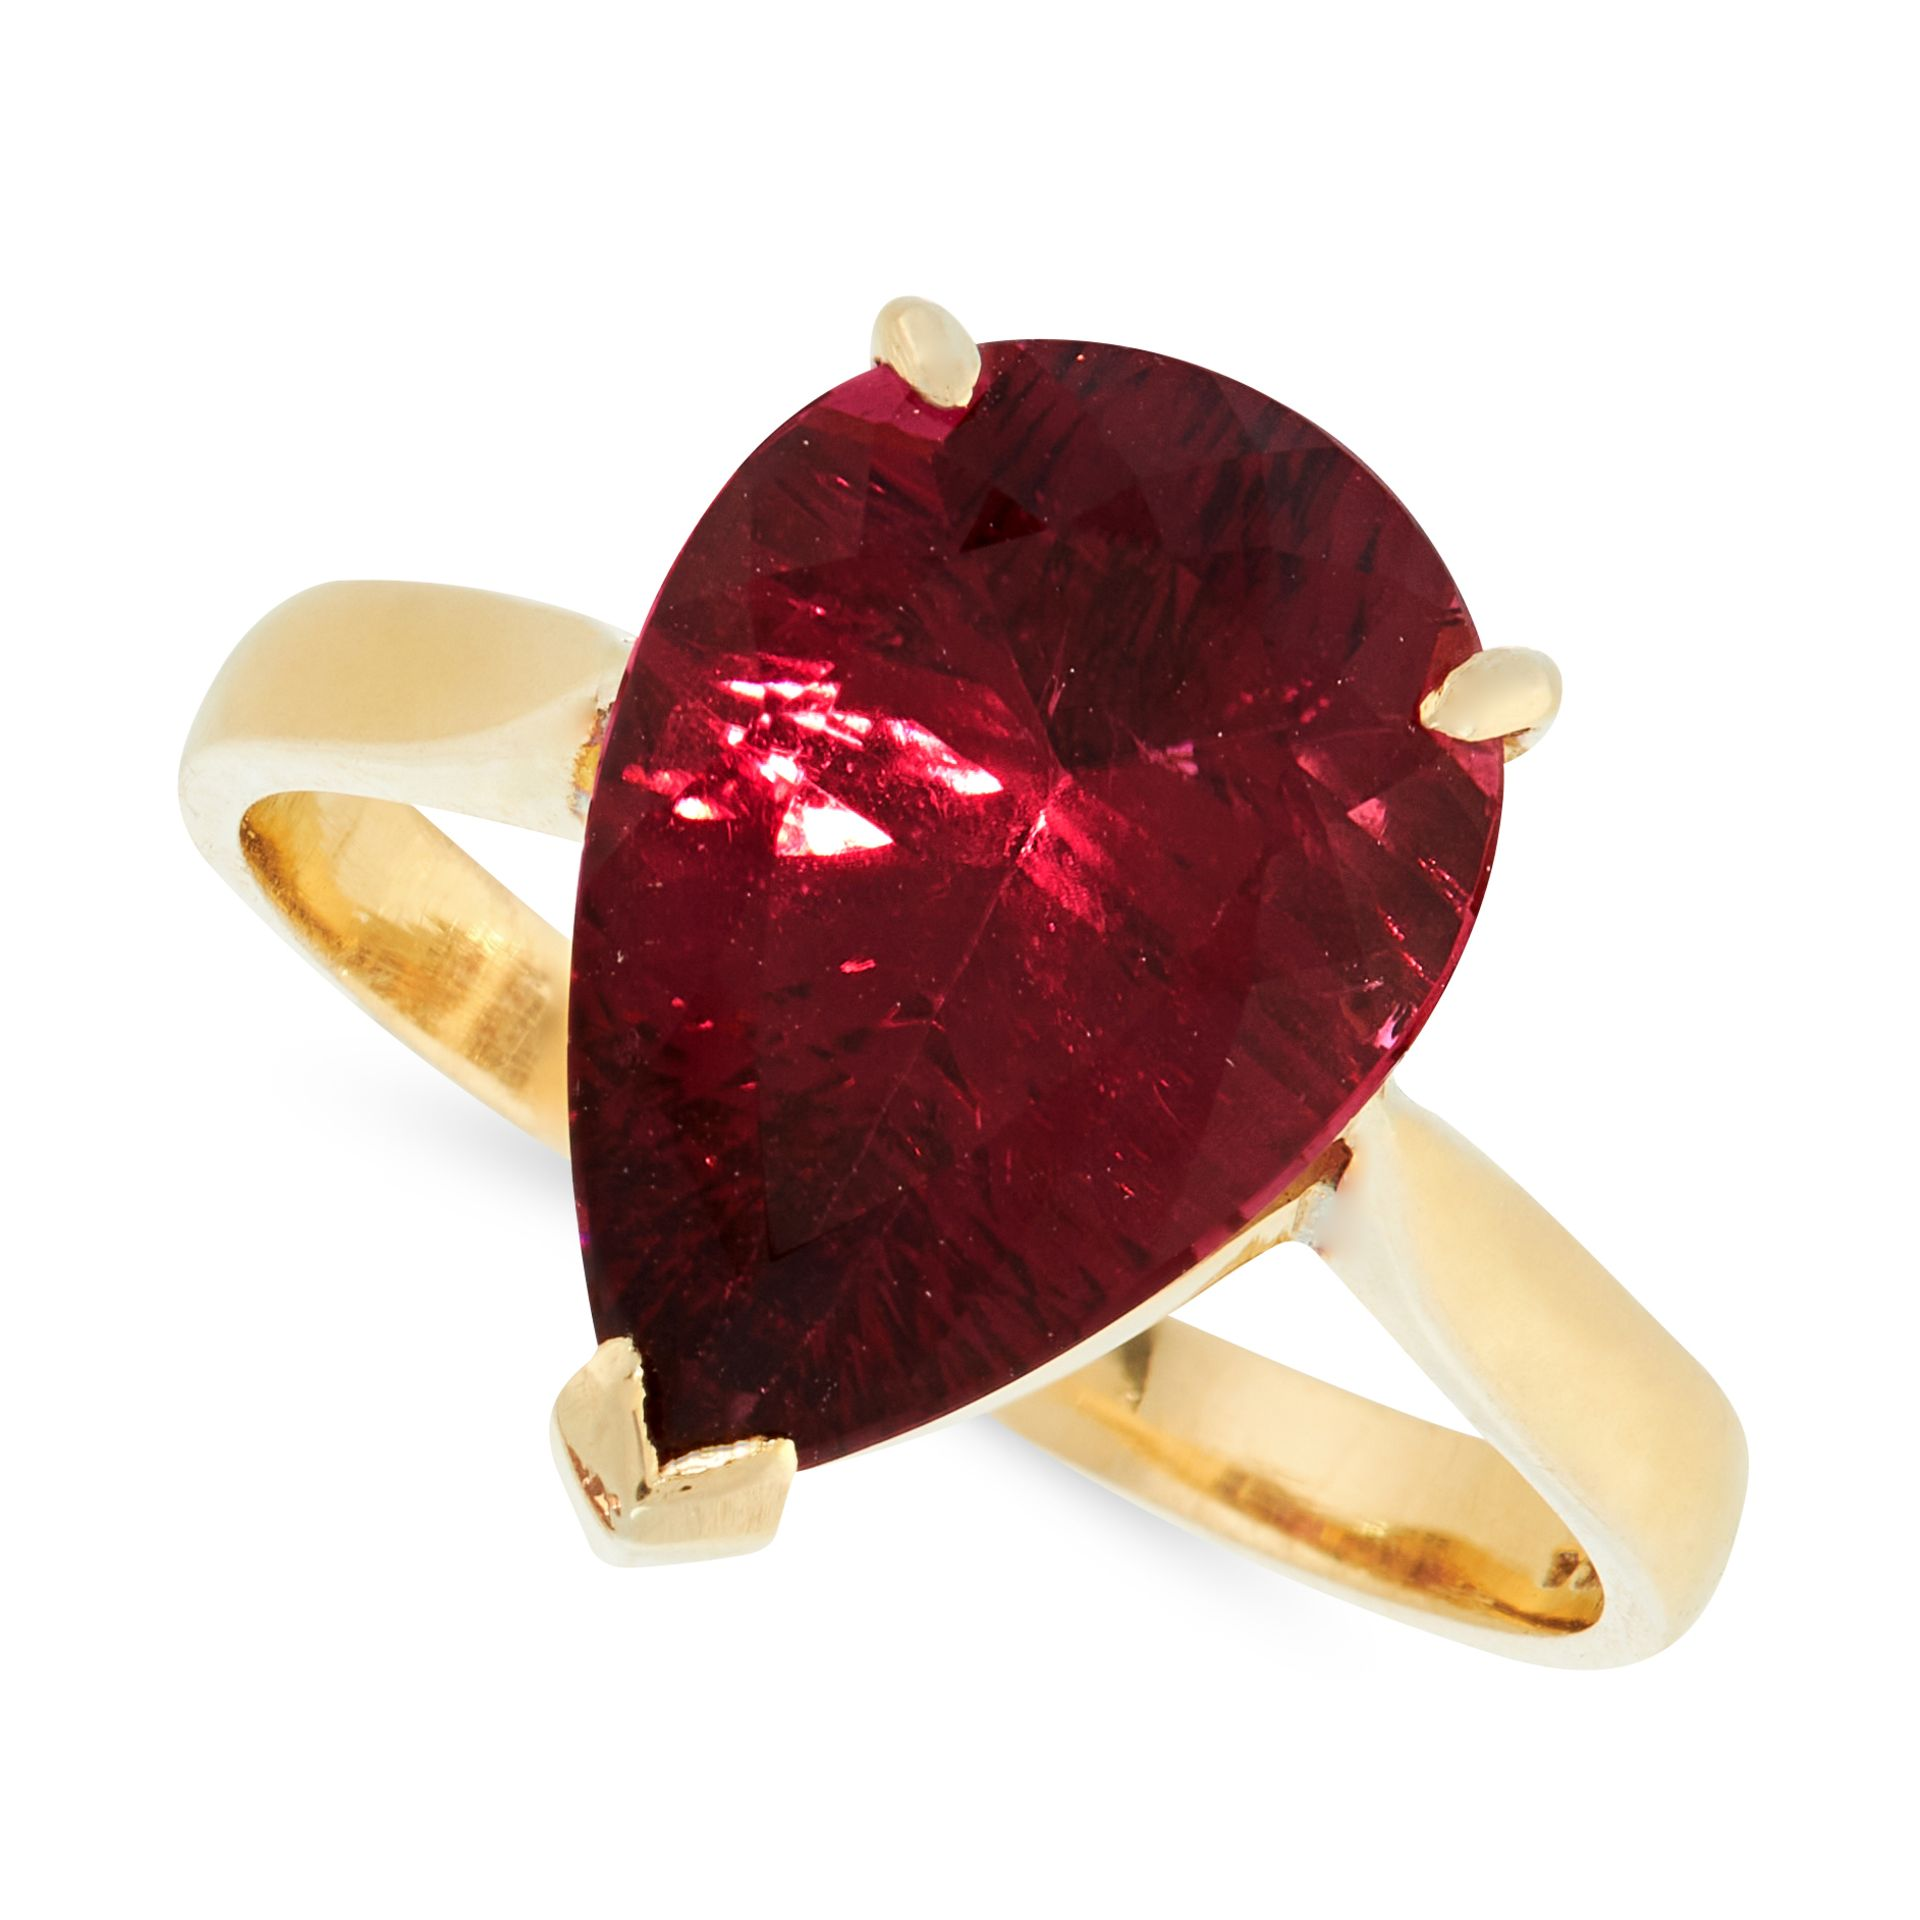 A PINK TOURMALINE DRESS RING in 18ct yellow gold, set with a pear cut pink tourmaline of 5.20